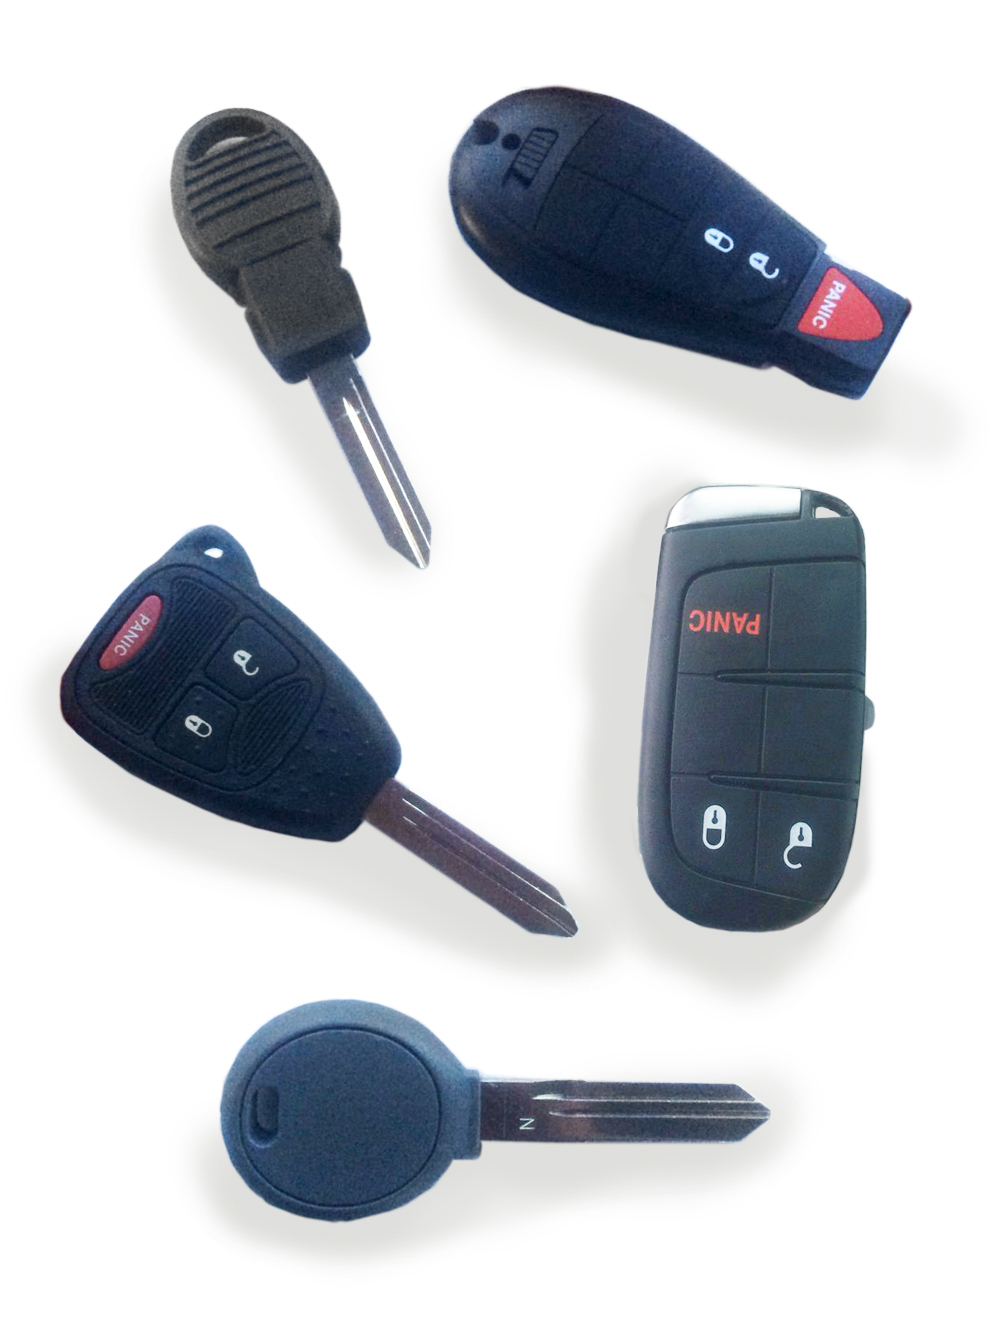 Chrysler Security Pin Code